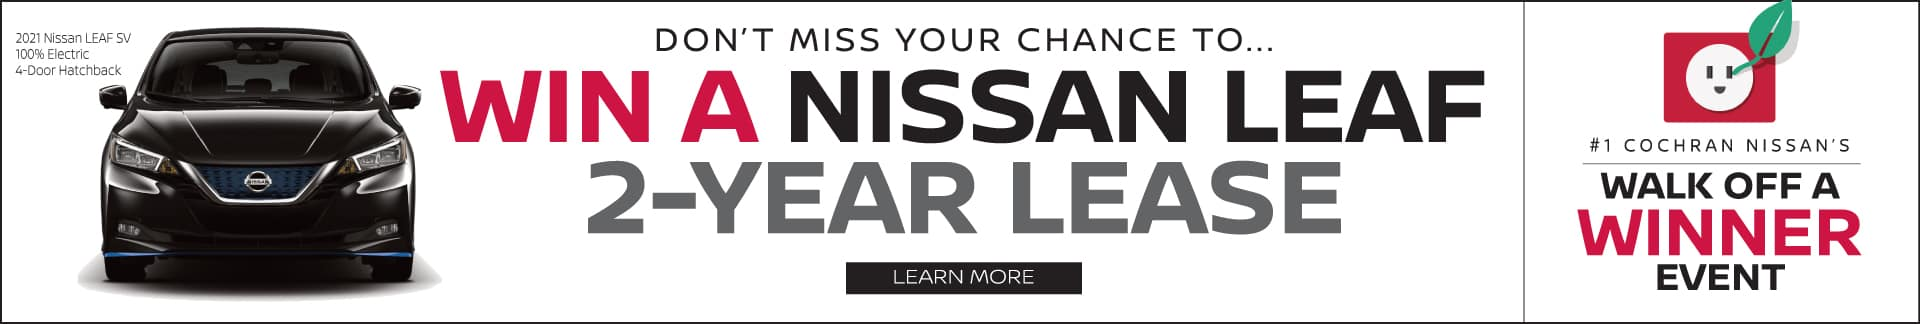 2021-april-nissan-leaf-event-inventory-banner-event-1920X324